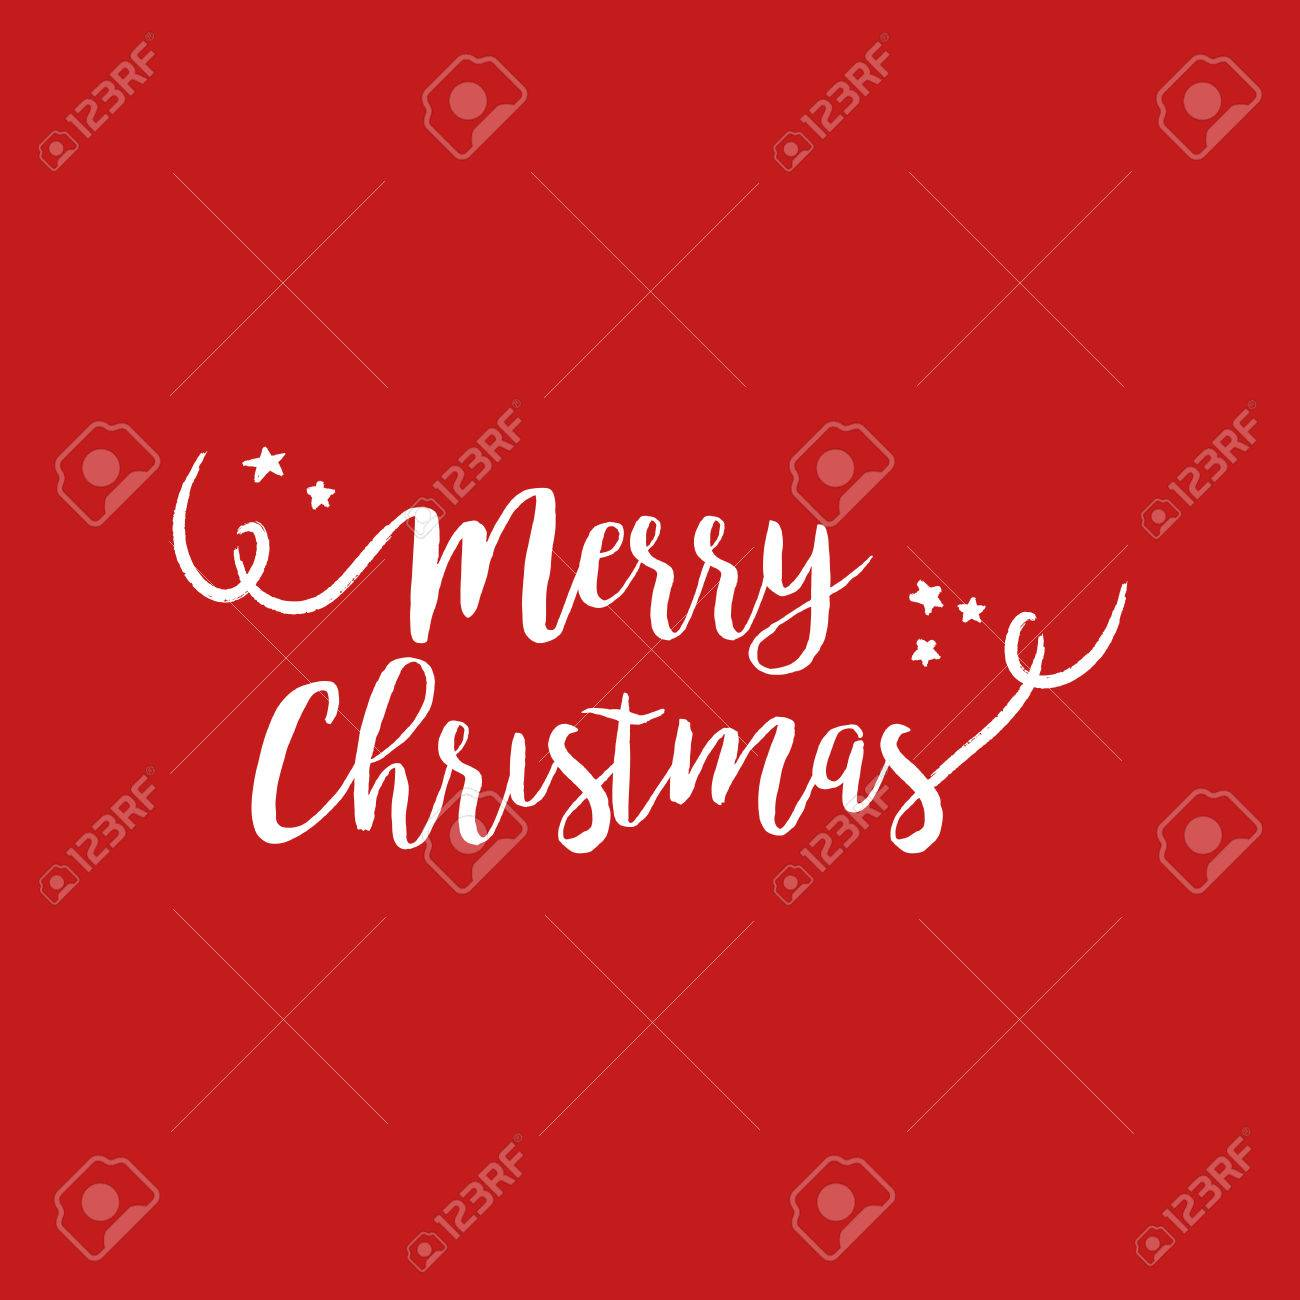 Merry christmas calligraphic quote design handwritten lettering merry christmas calligraphic quote design handwritten lettering illustration for holiday season greeting card eps10 m4hsunfo